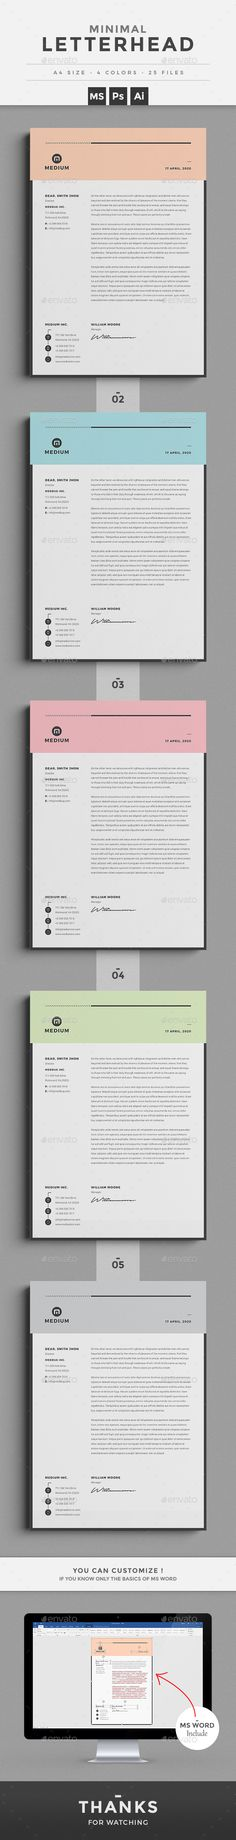 Invoice Template, Proposal templates and Branding design - letterhead example